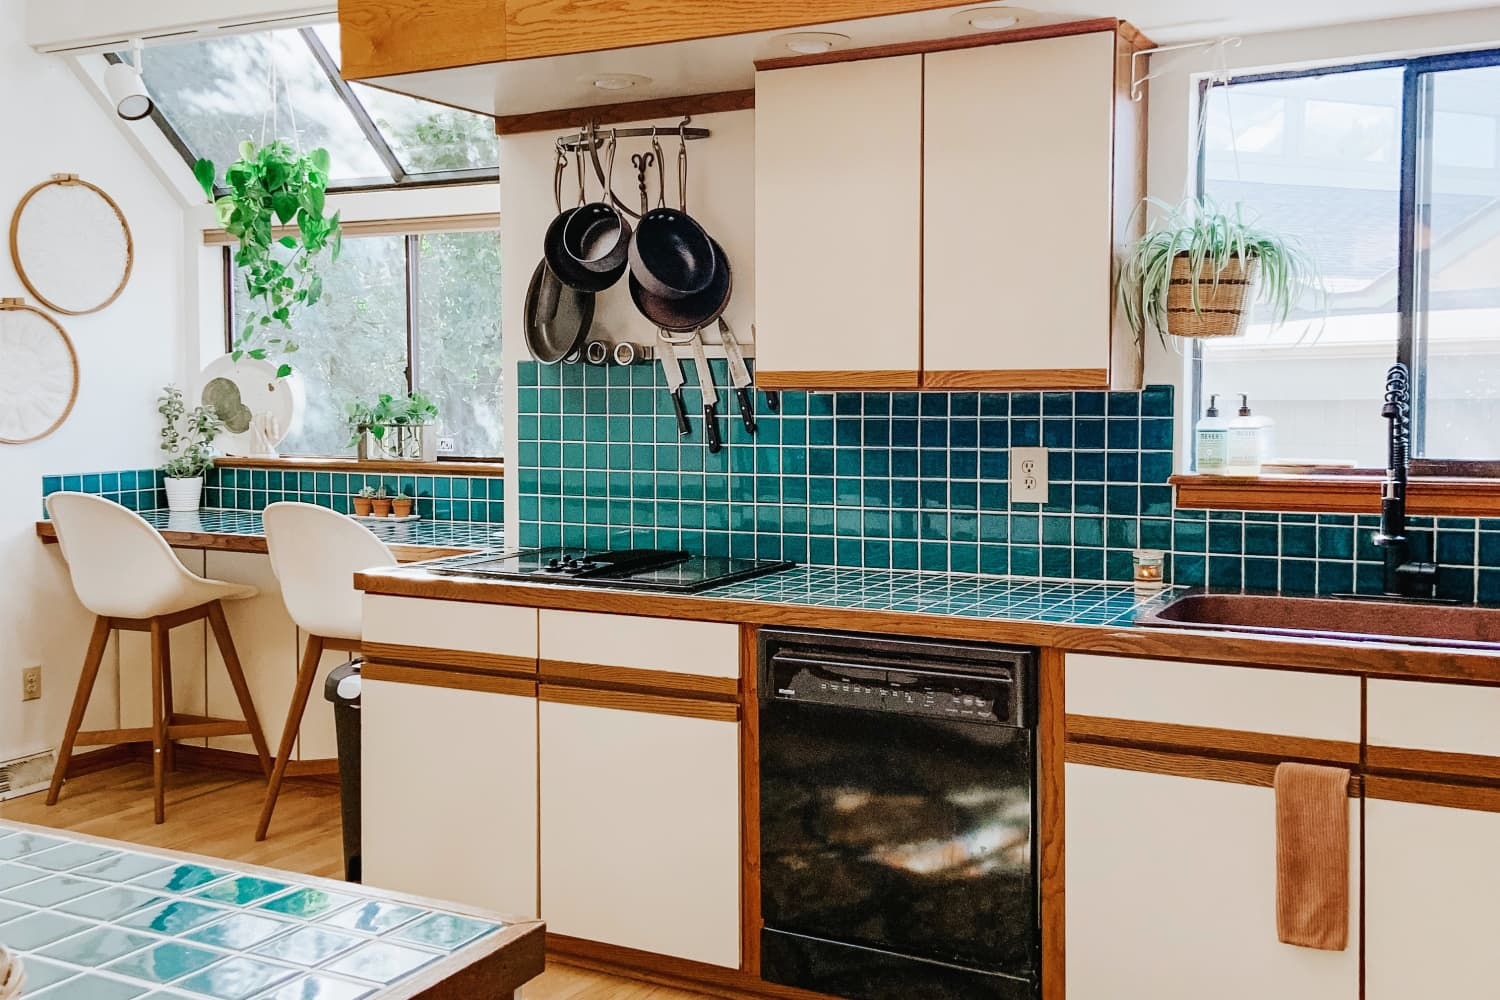 This Home's Emerald Backsplash and Kitchen Rug Combo Will Make You Green with Envy